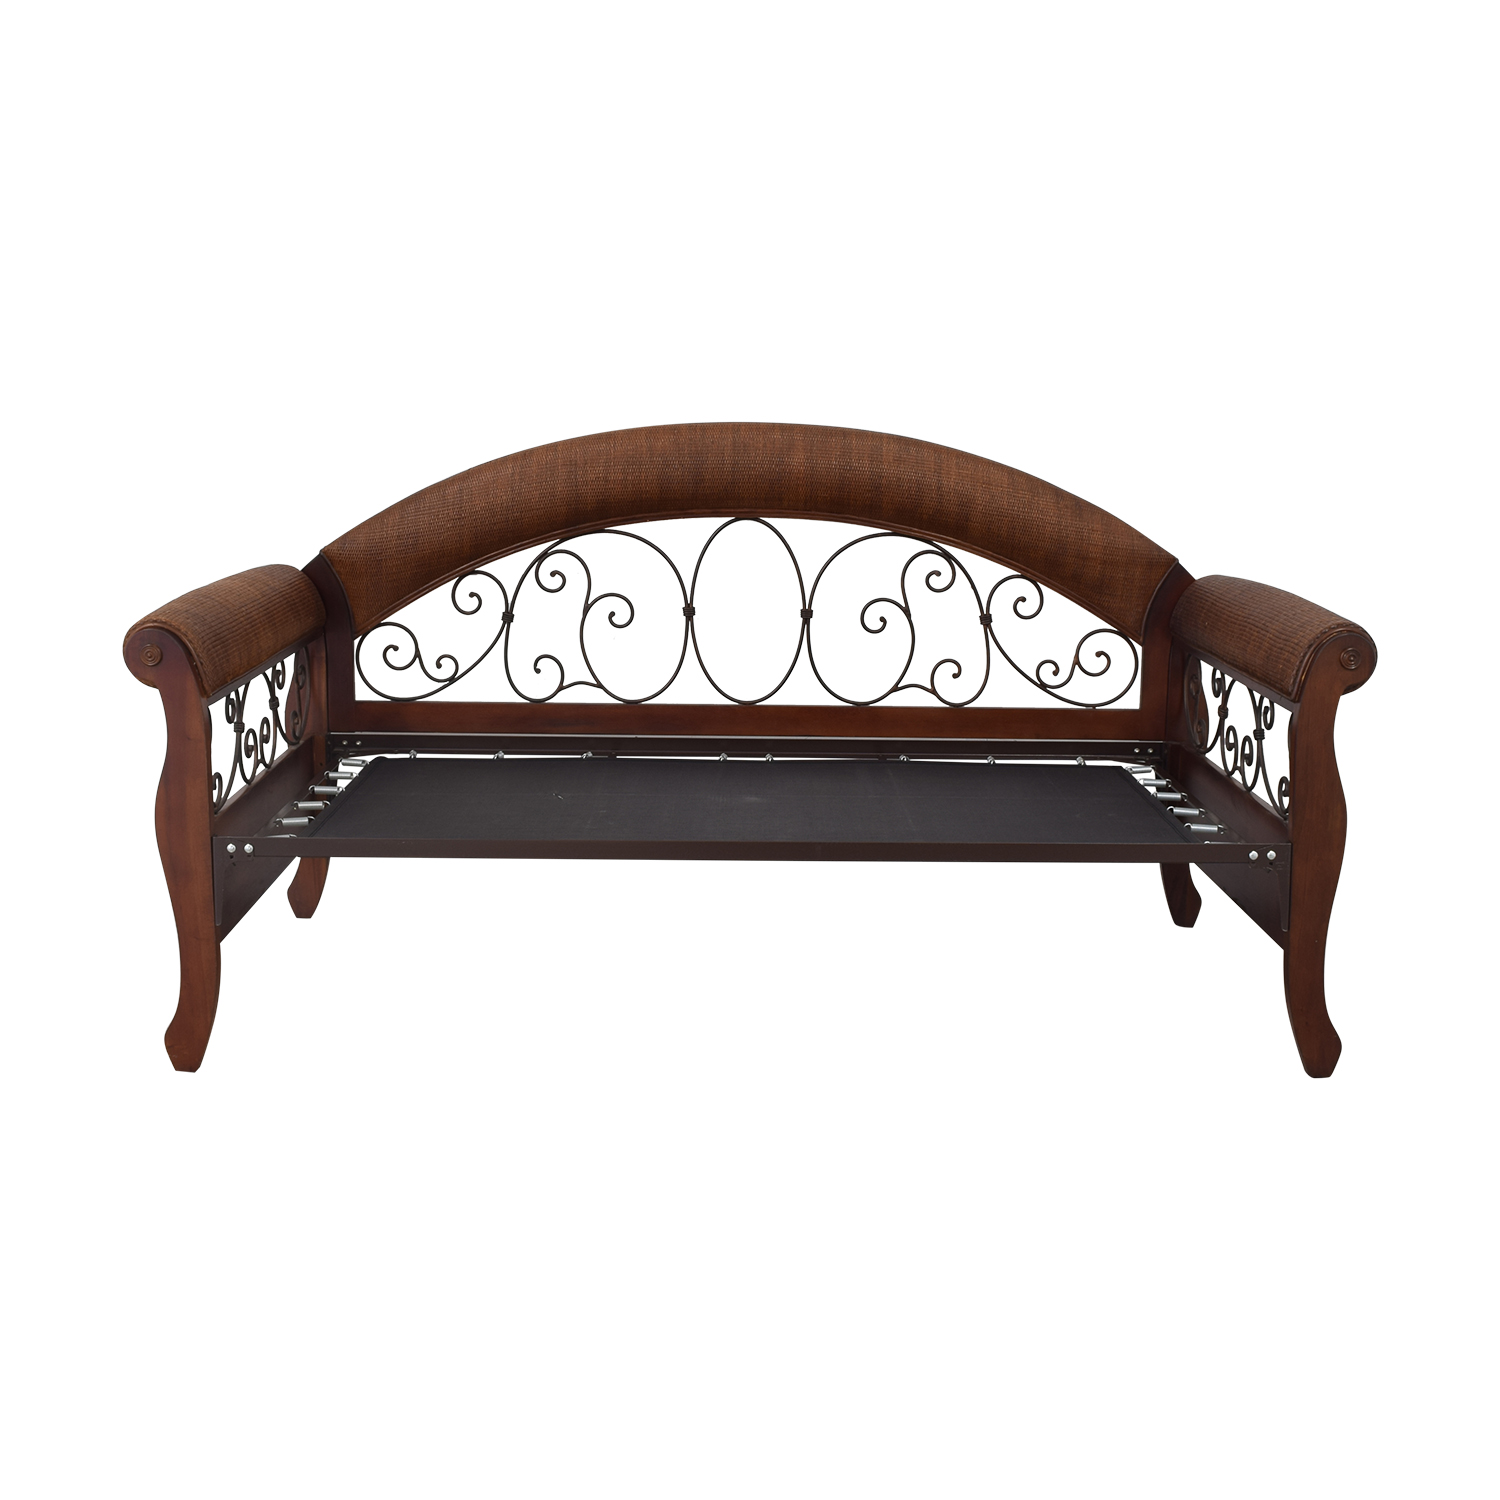 Neiman Marcus Nieman Marcus Twin Daybed second hand